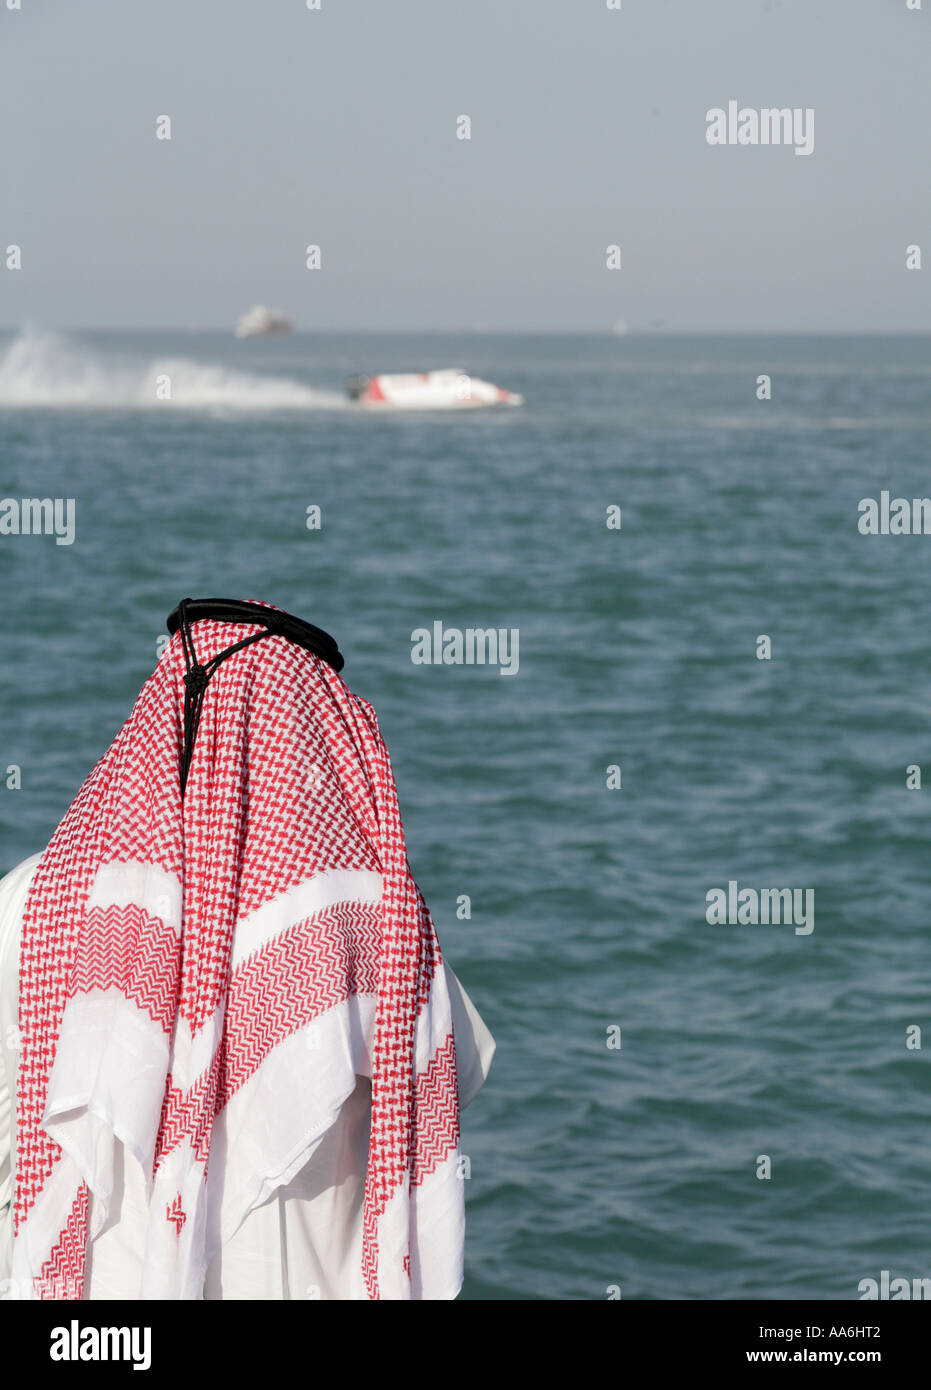 A Qatari in national dress watching the progress of the Formula One World Speedboat Championship - Stock Image